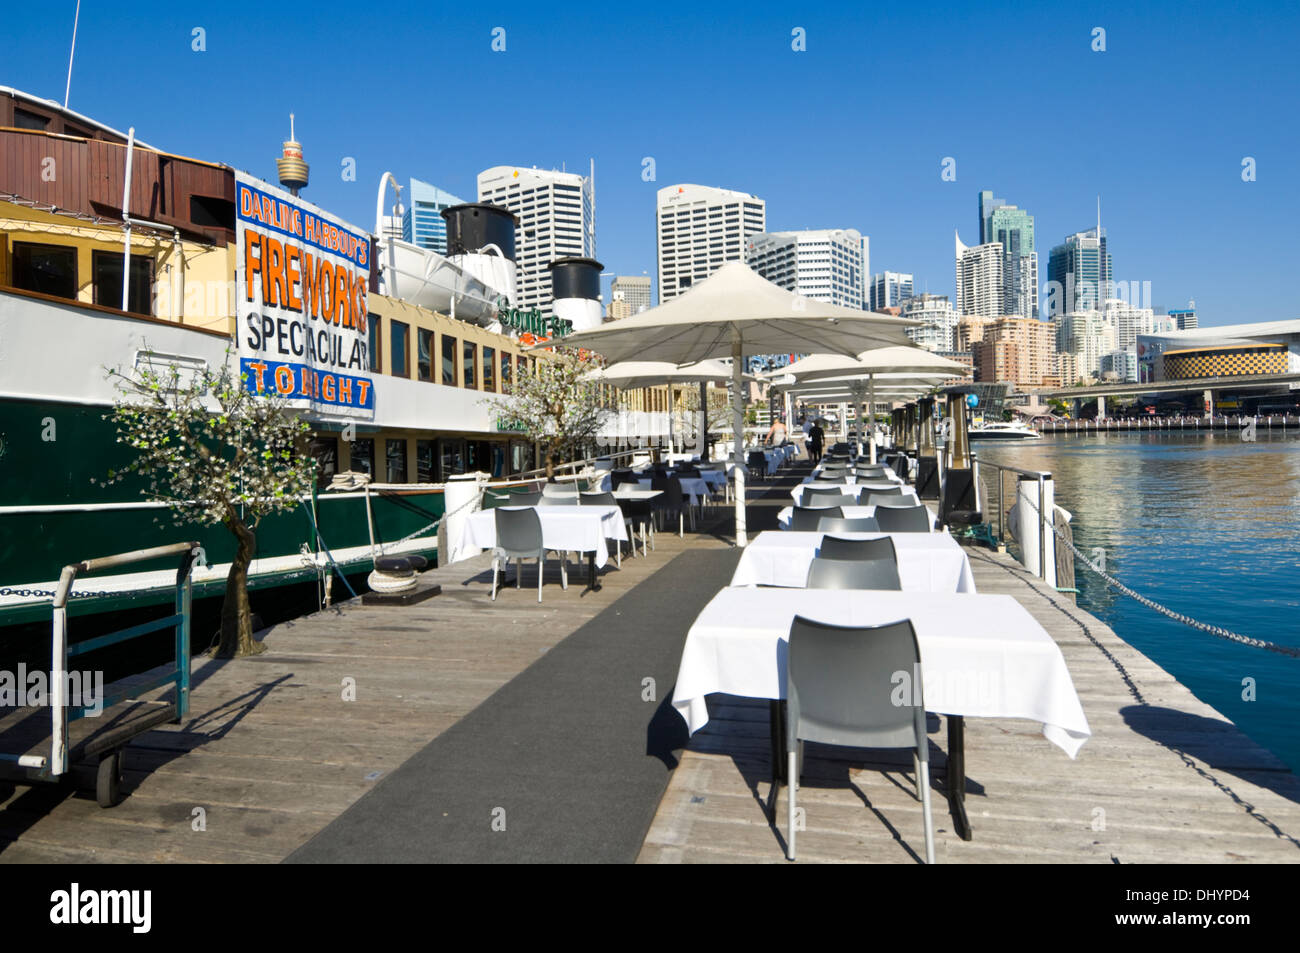 South Steyne Floating Restaurant, Darling Harbour, Sydney, Australia - Stock Image